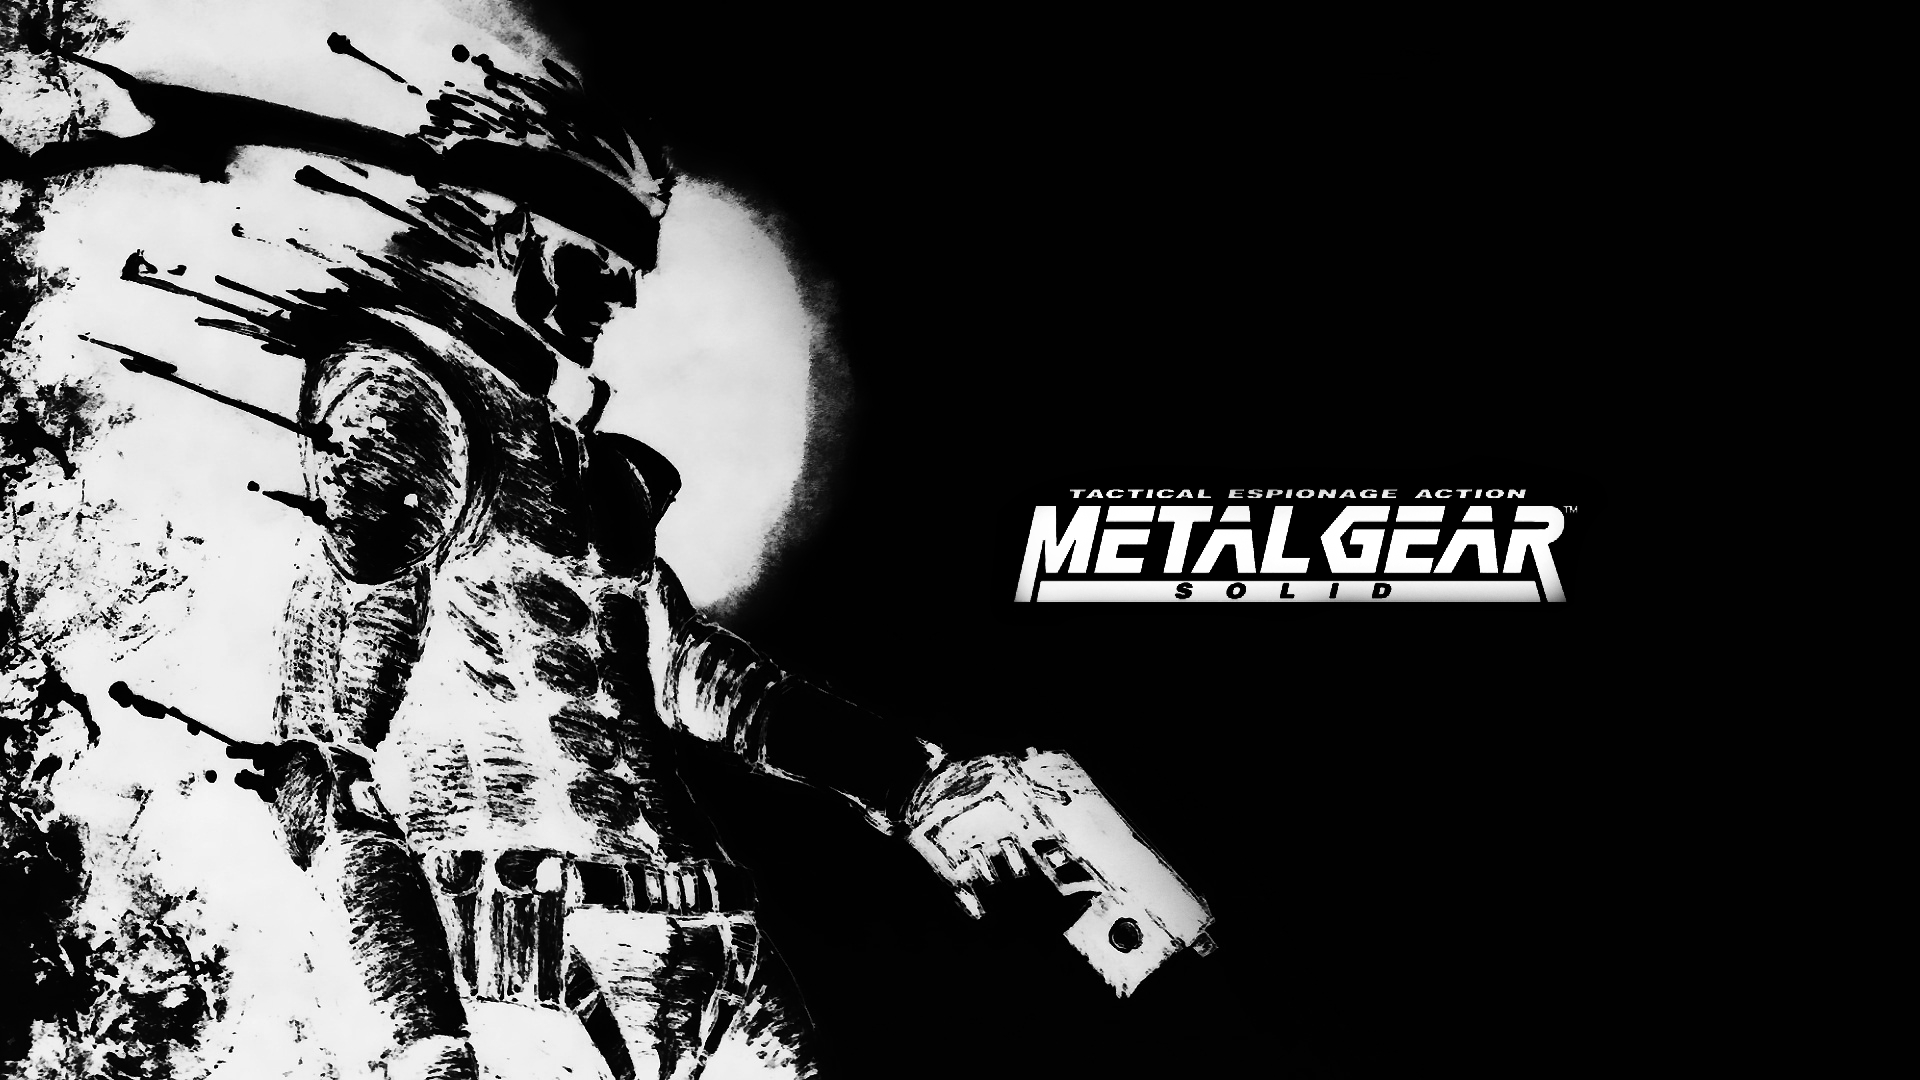 Metal Gear Solid Wallpapers Top Free Metal Gear Solid